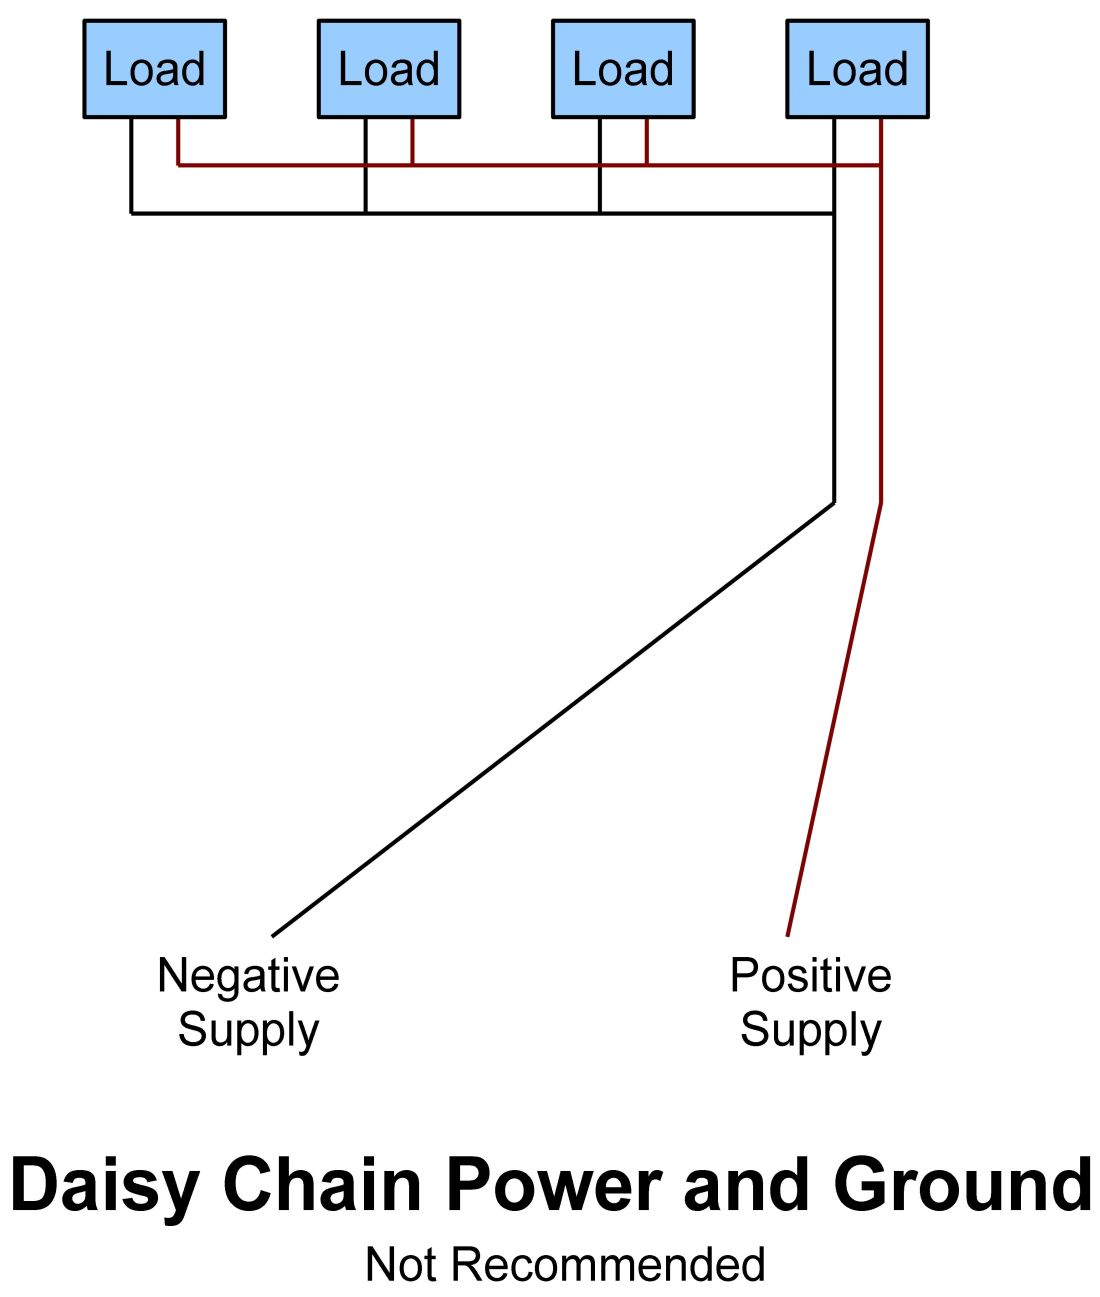 hight resolution of  067 daisychain ground resized665 2c7846ssld1 daisy chain electrical wiring diagram efcaviation com daisy chain